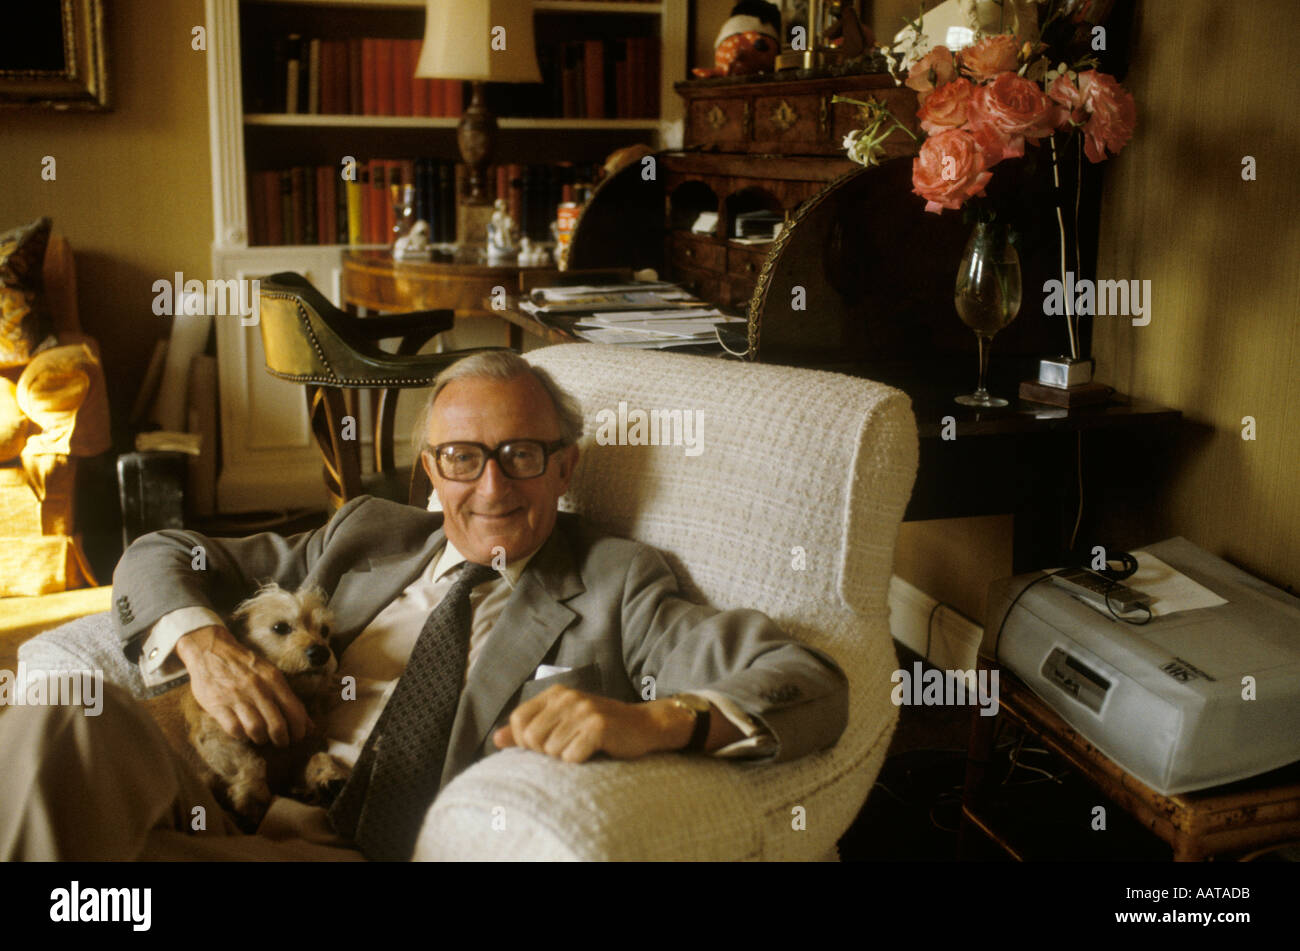 Lord Carrington at home.1970s portrait  The Manor House in Bledlow, Buckinghamshire 70s UK HOMER SYKES - Stock Image